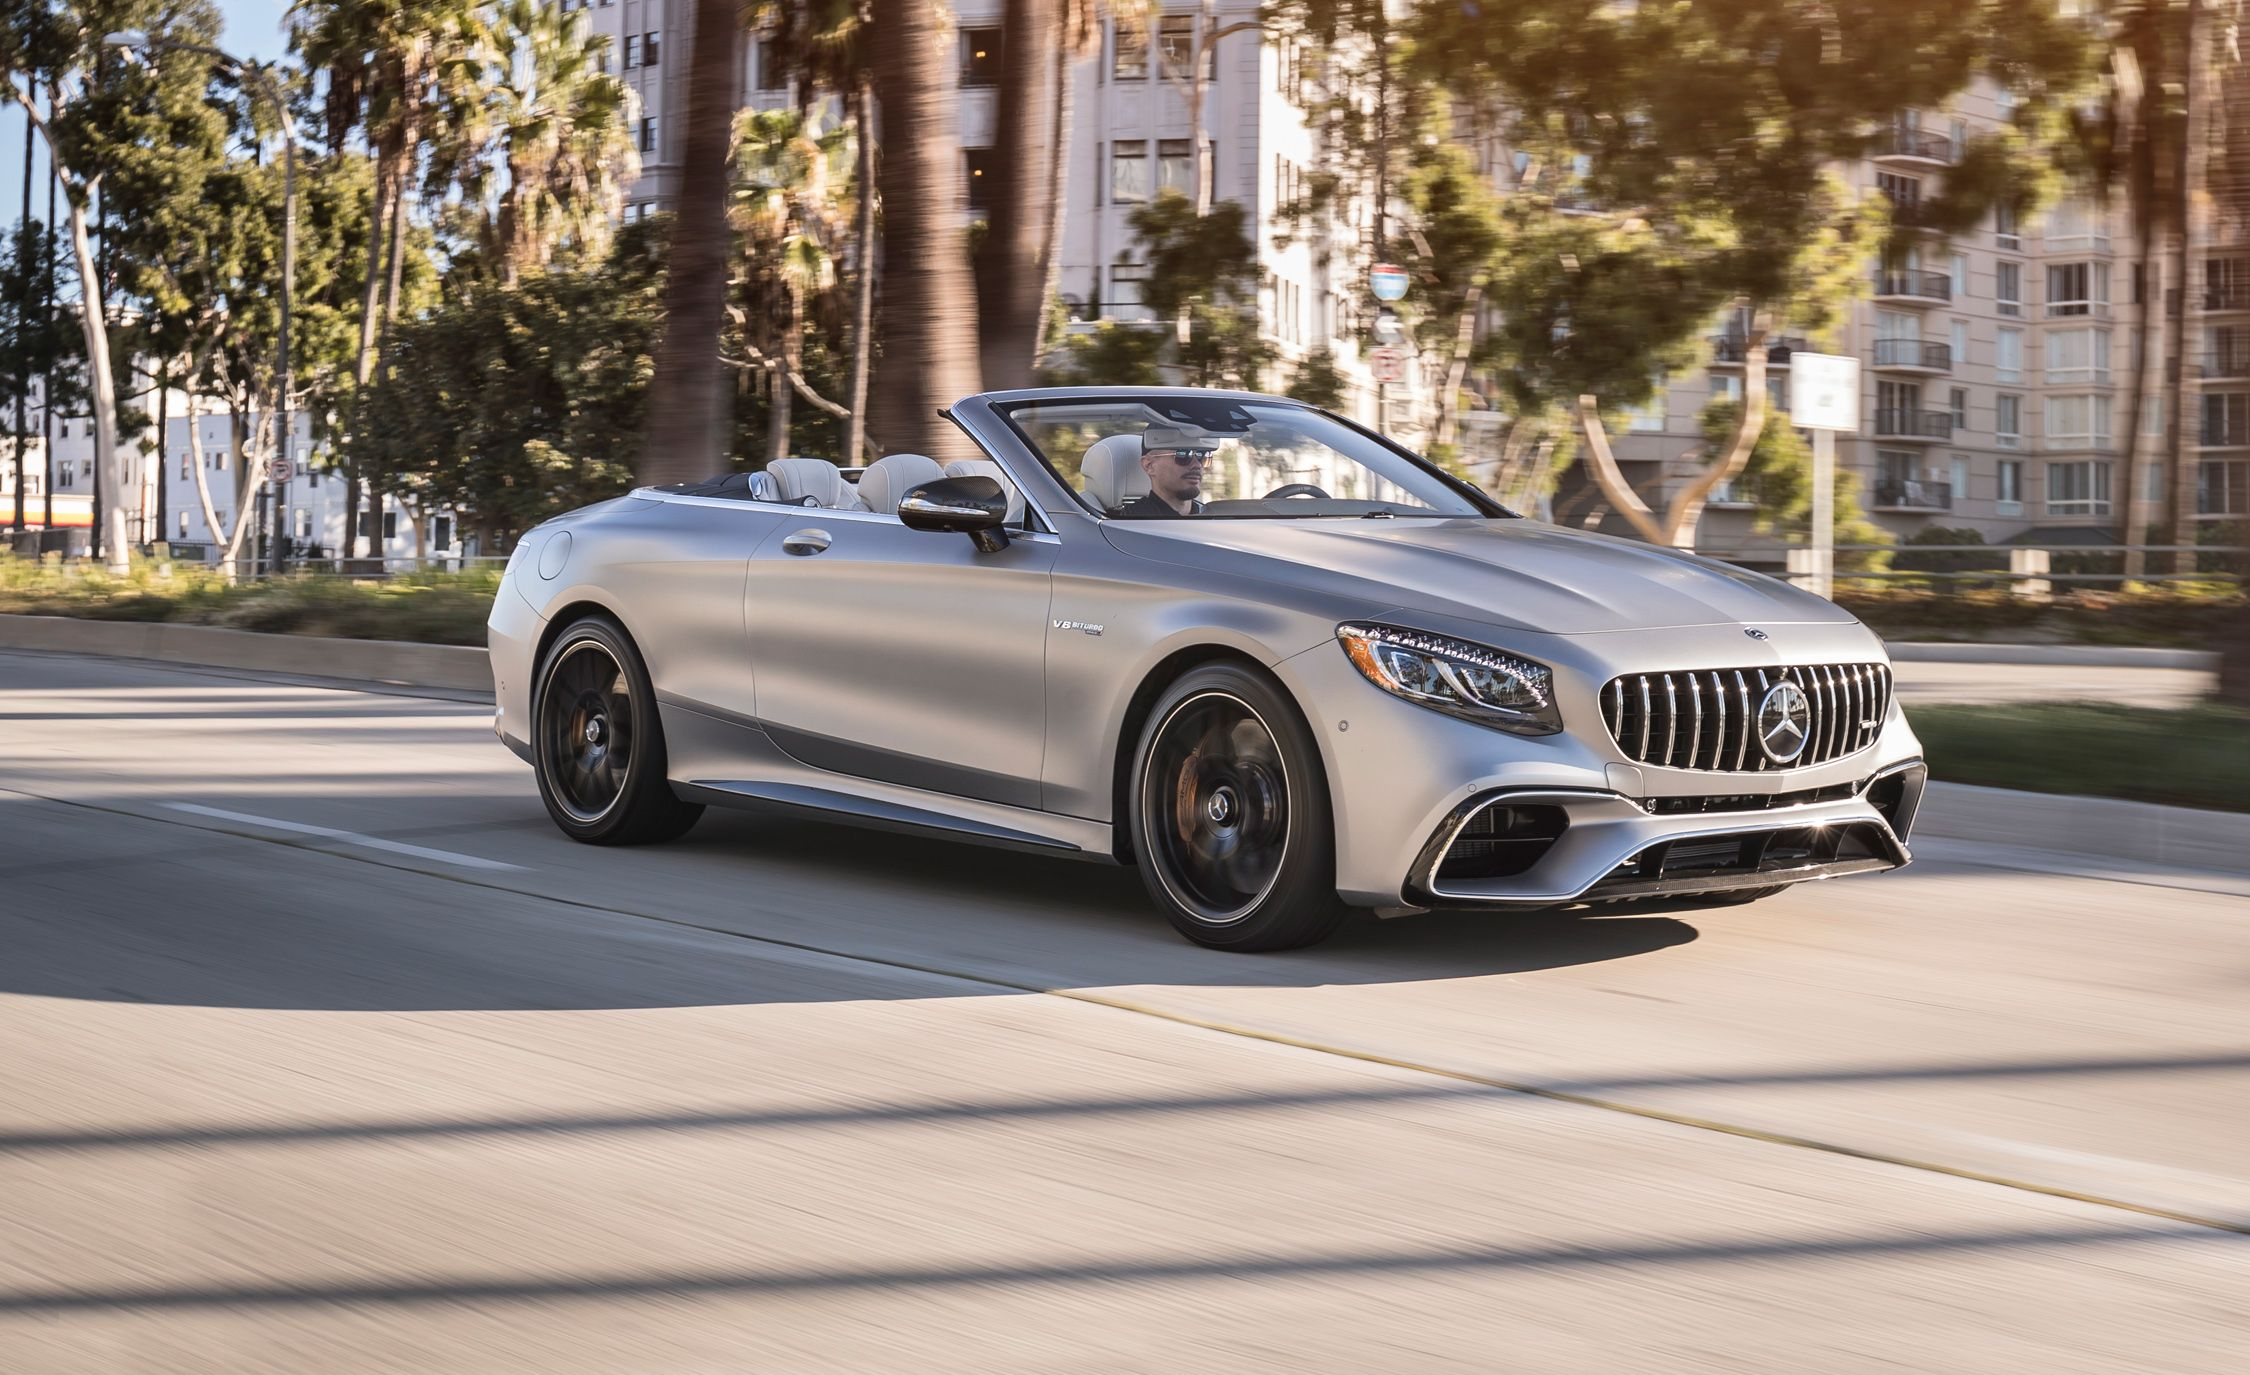 2018 Mercedes Benz Amg S Cl Coupe And Cabriolet First Drive Review Car Driver